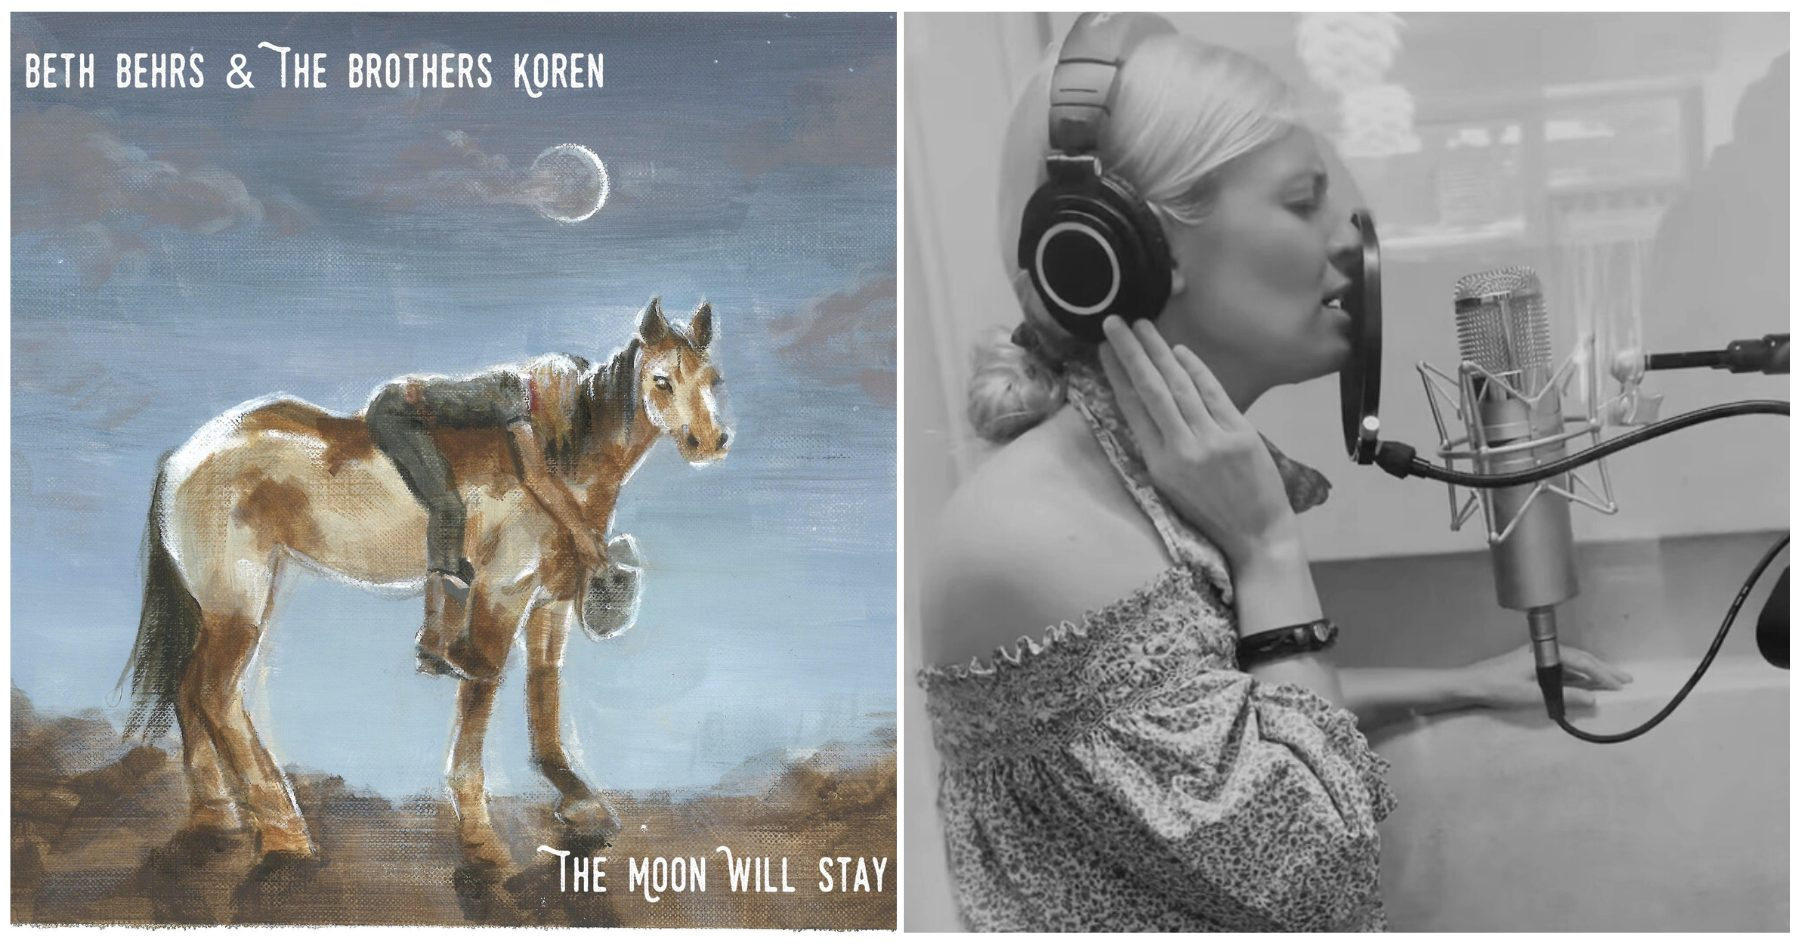 Harmonics with Beth Behrs: Beth Behrs & the Brothers Koren, 'The Moon Will Stay'